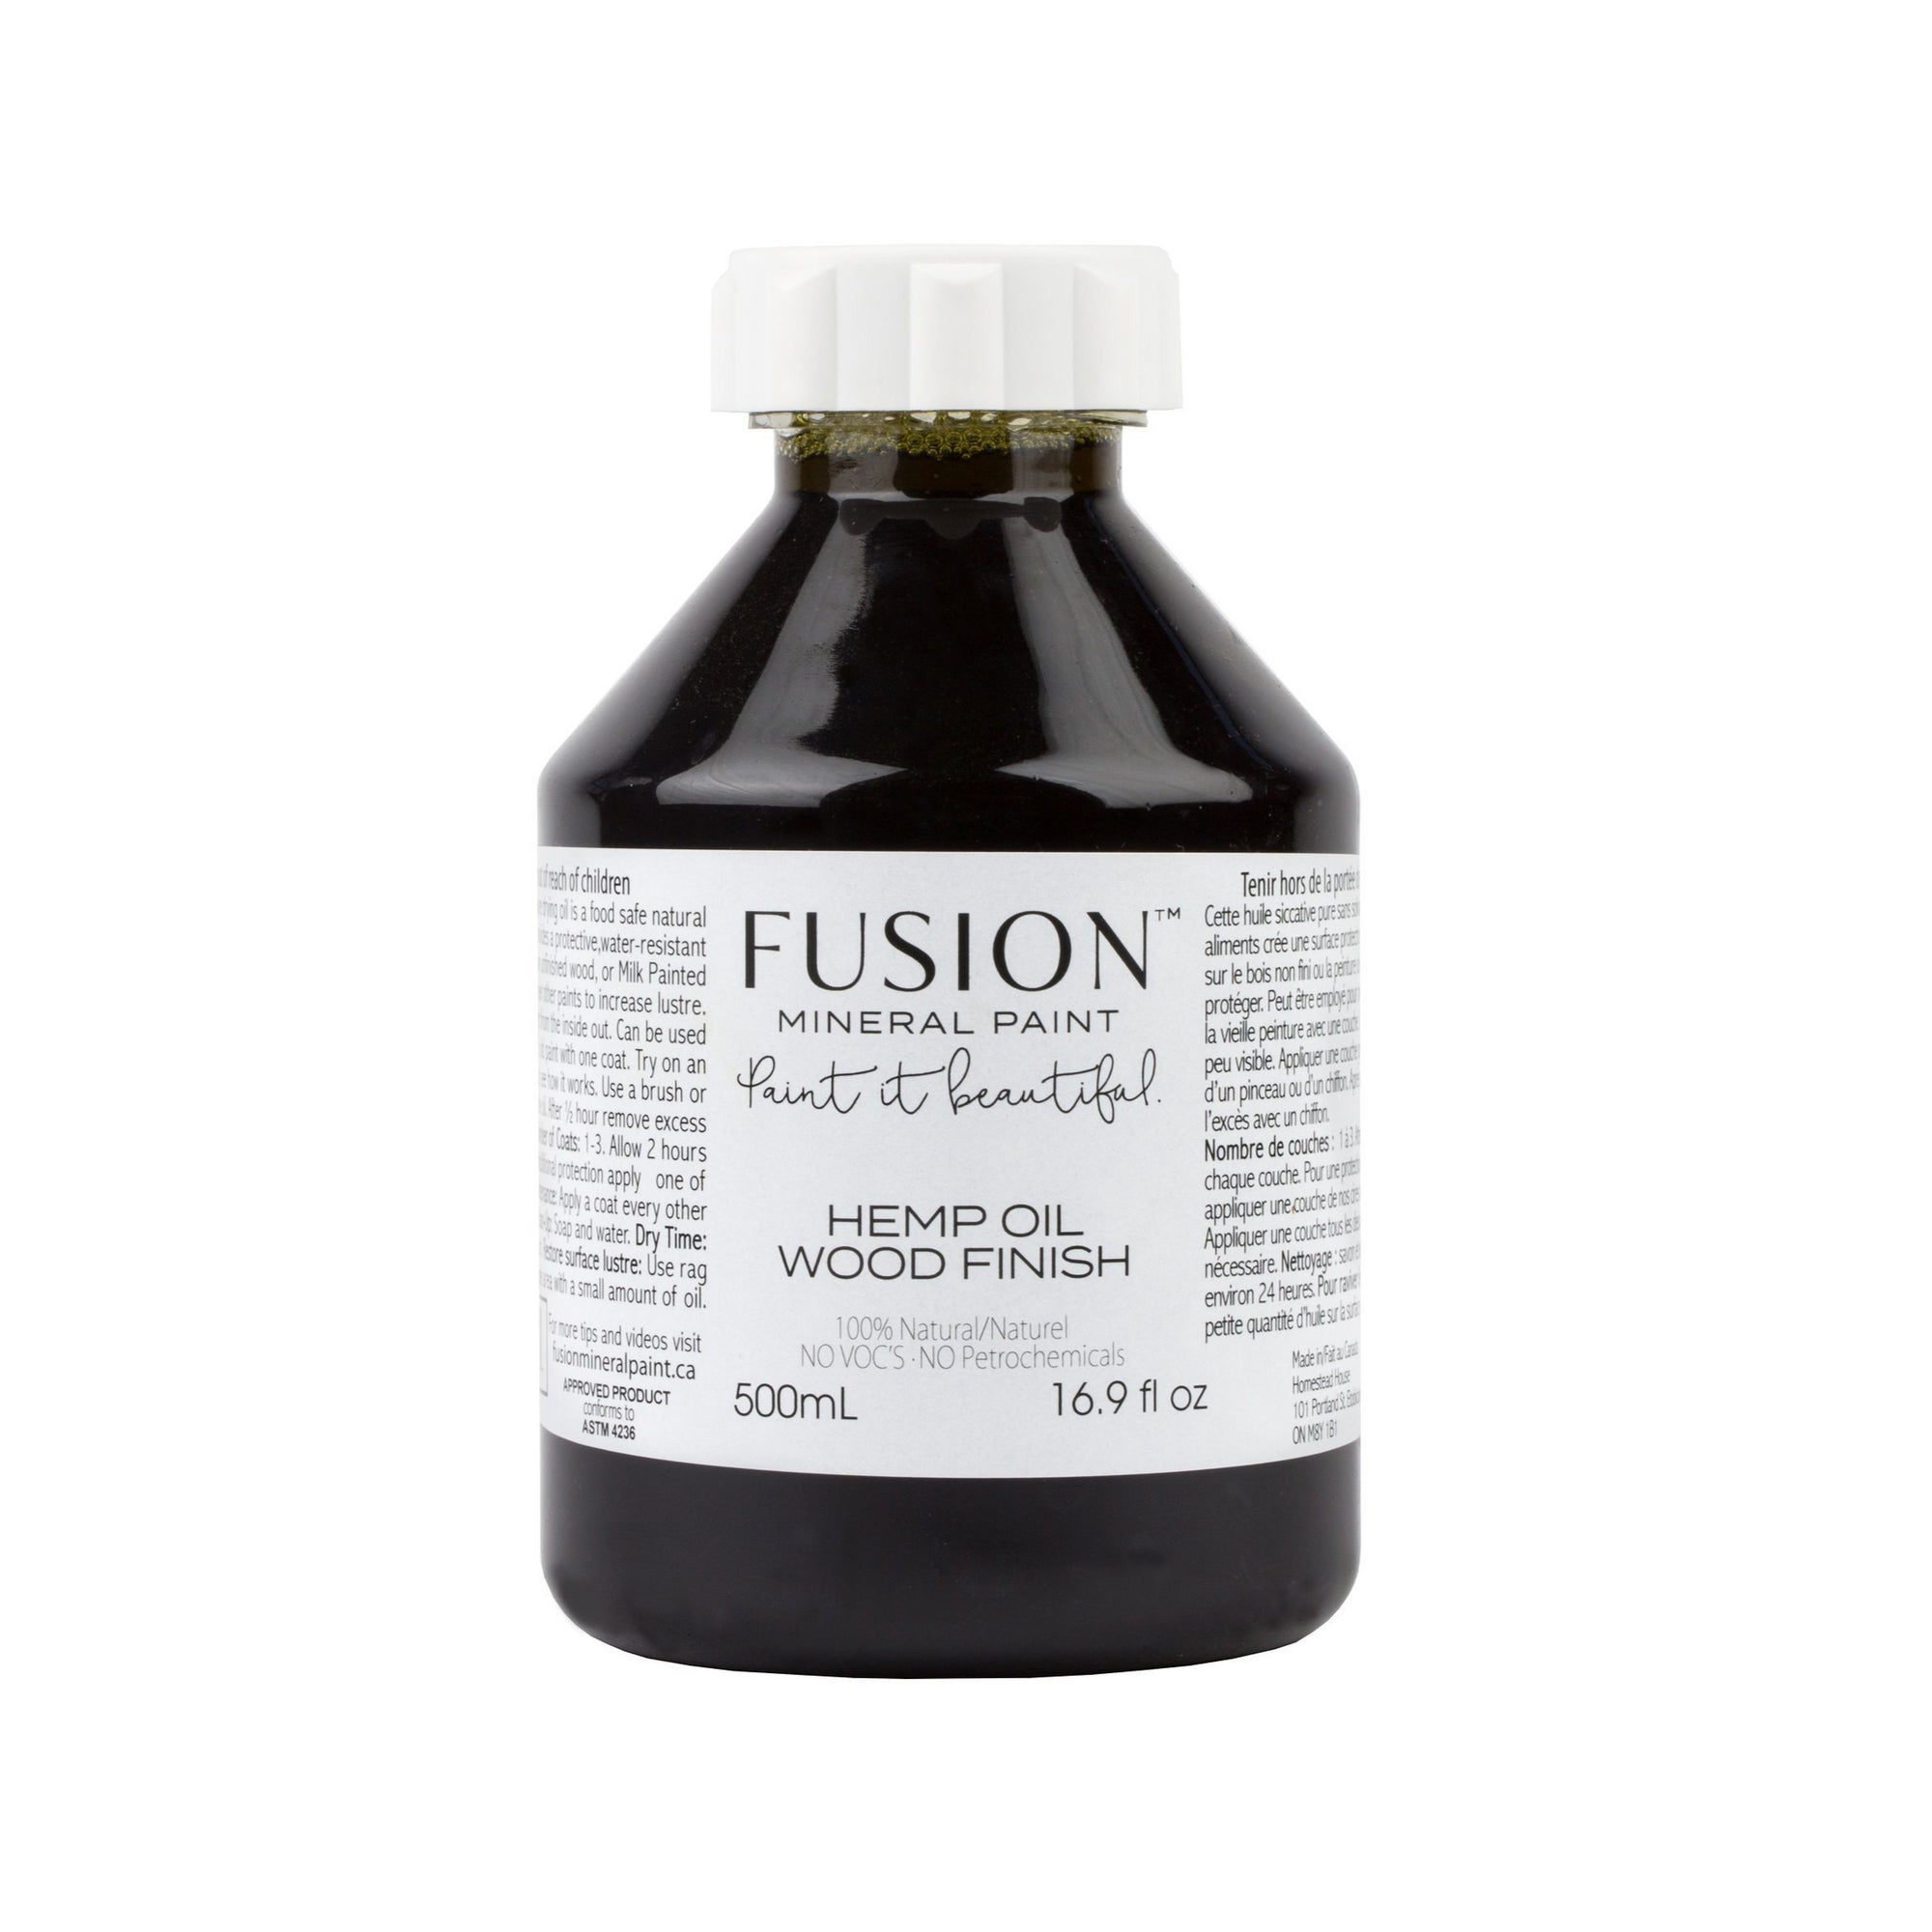 Hemp Oil Wood Finish Fusion Mineral Paint